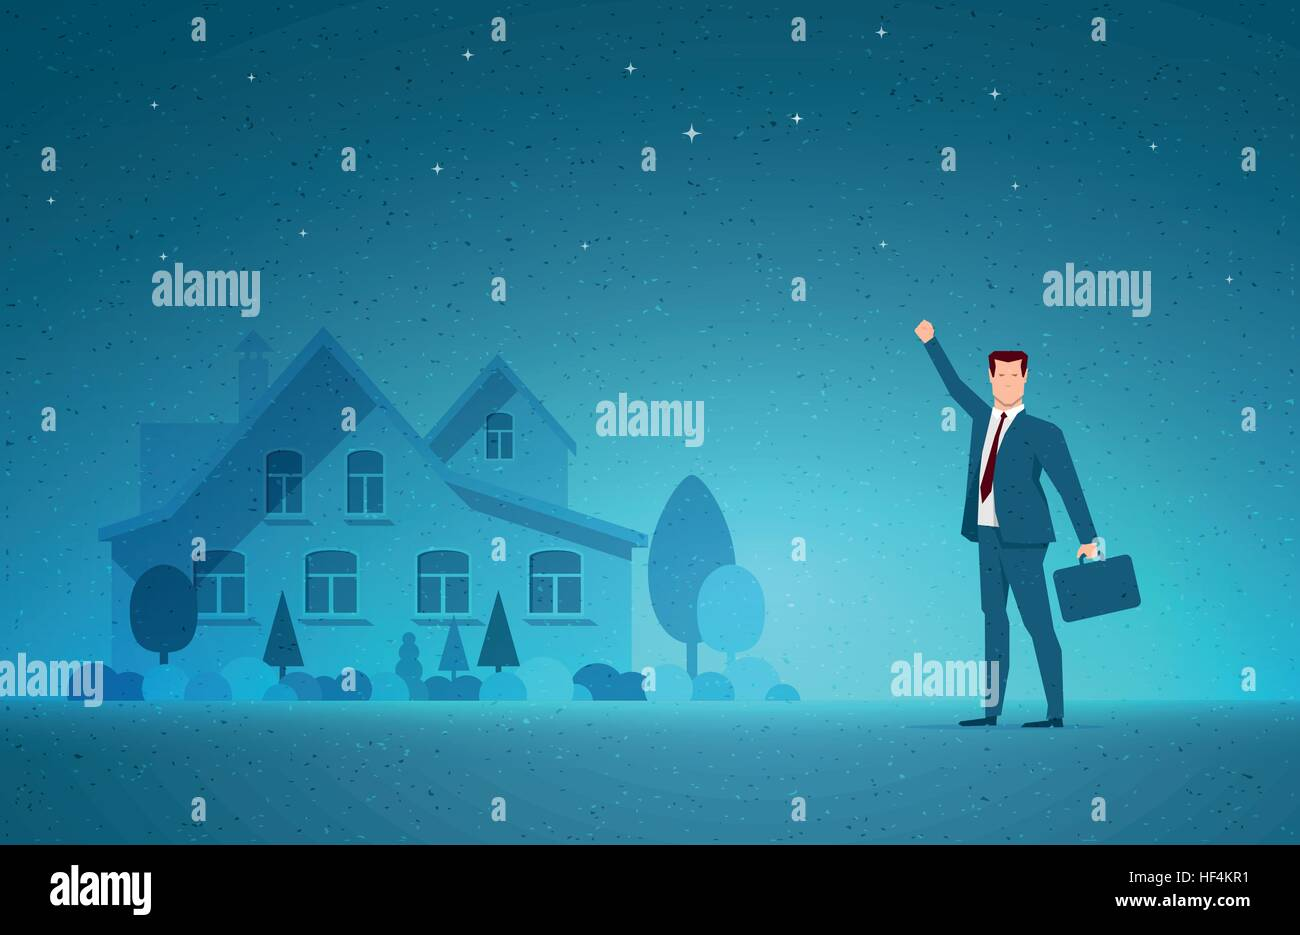 Business concept vector illustration. Investing, real estate, investment opportunity, selling or buying concept. - Stock Vector